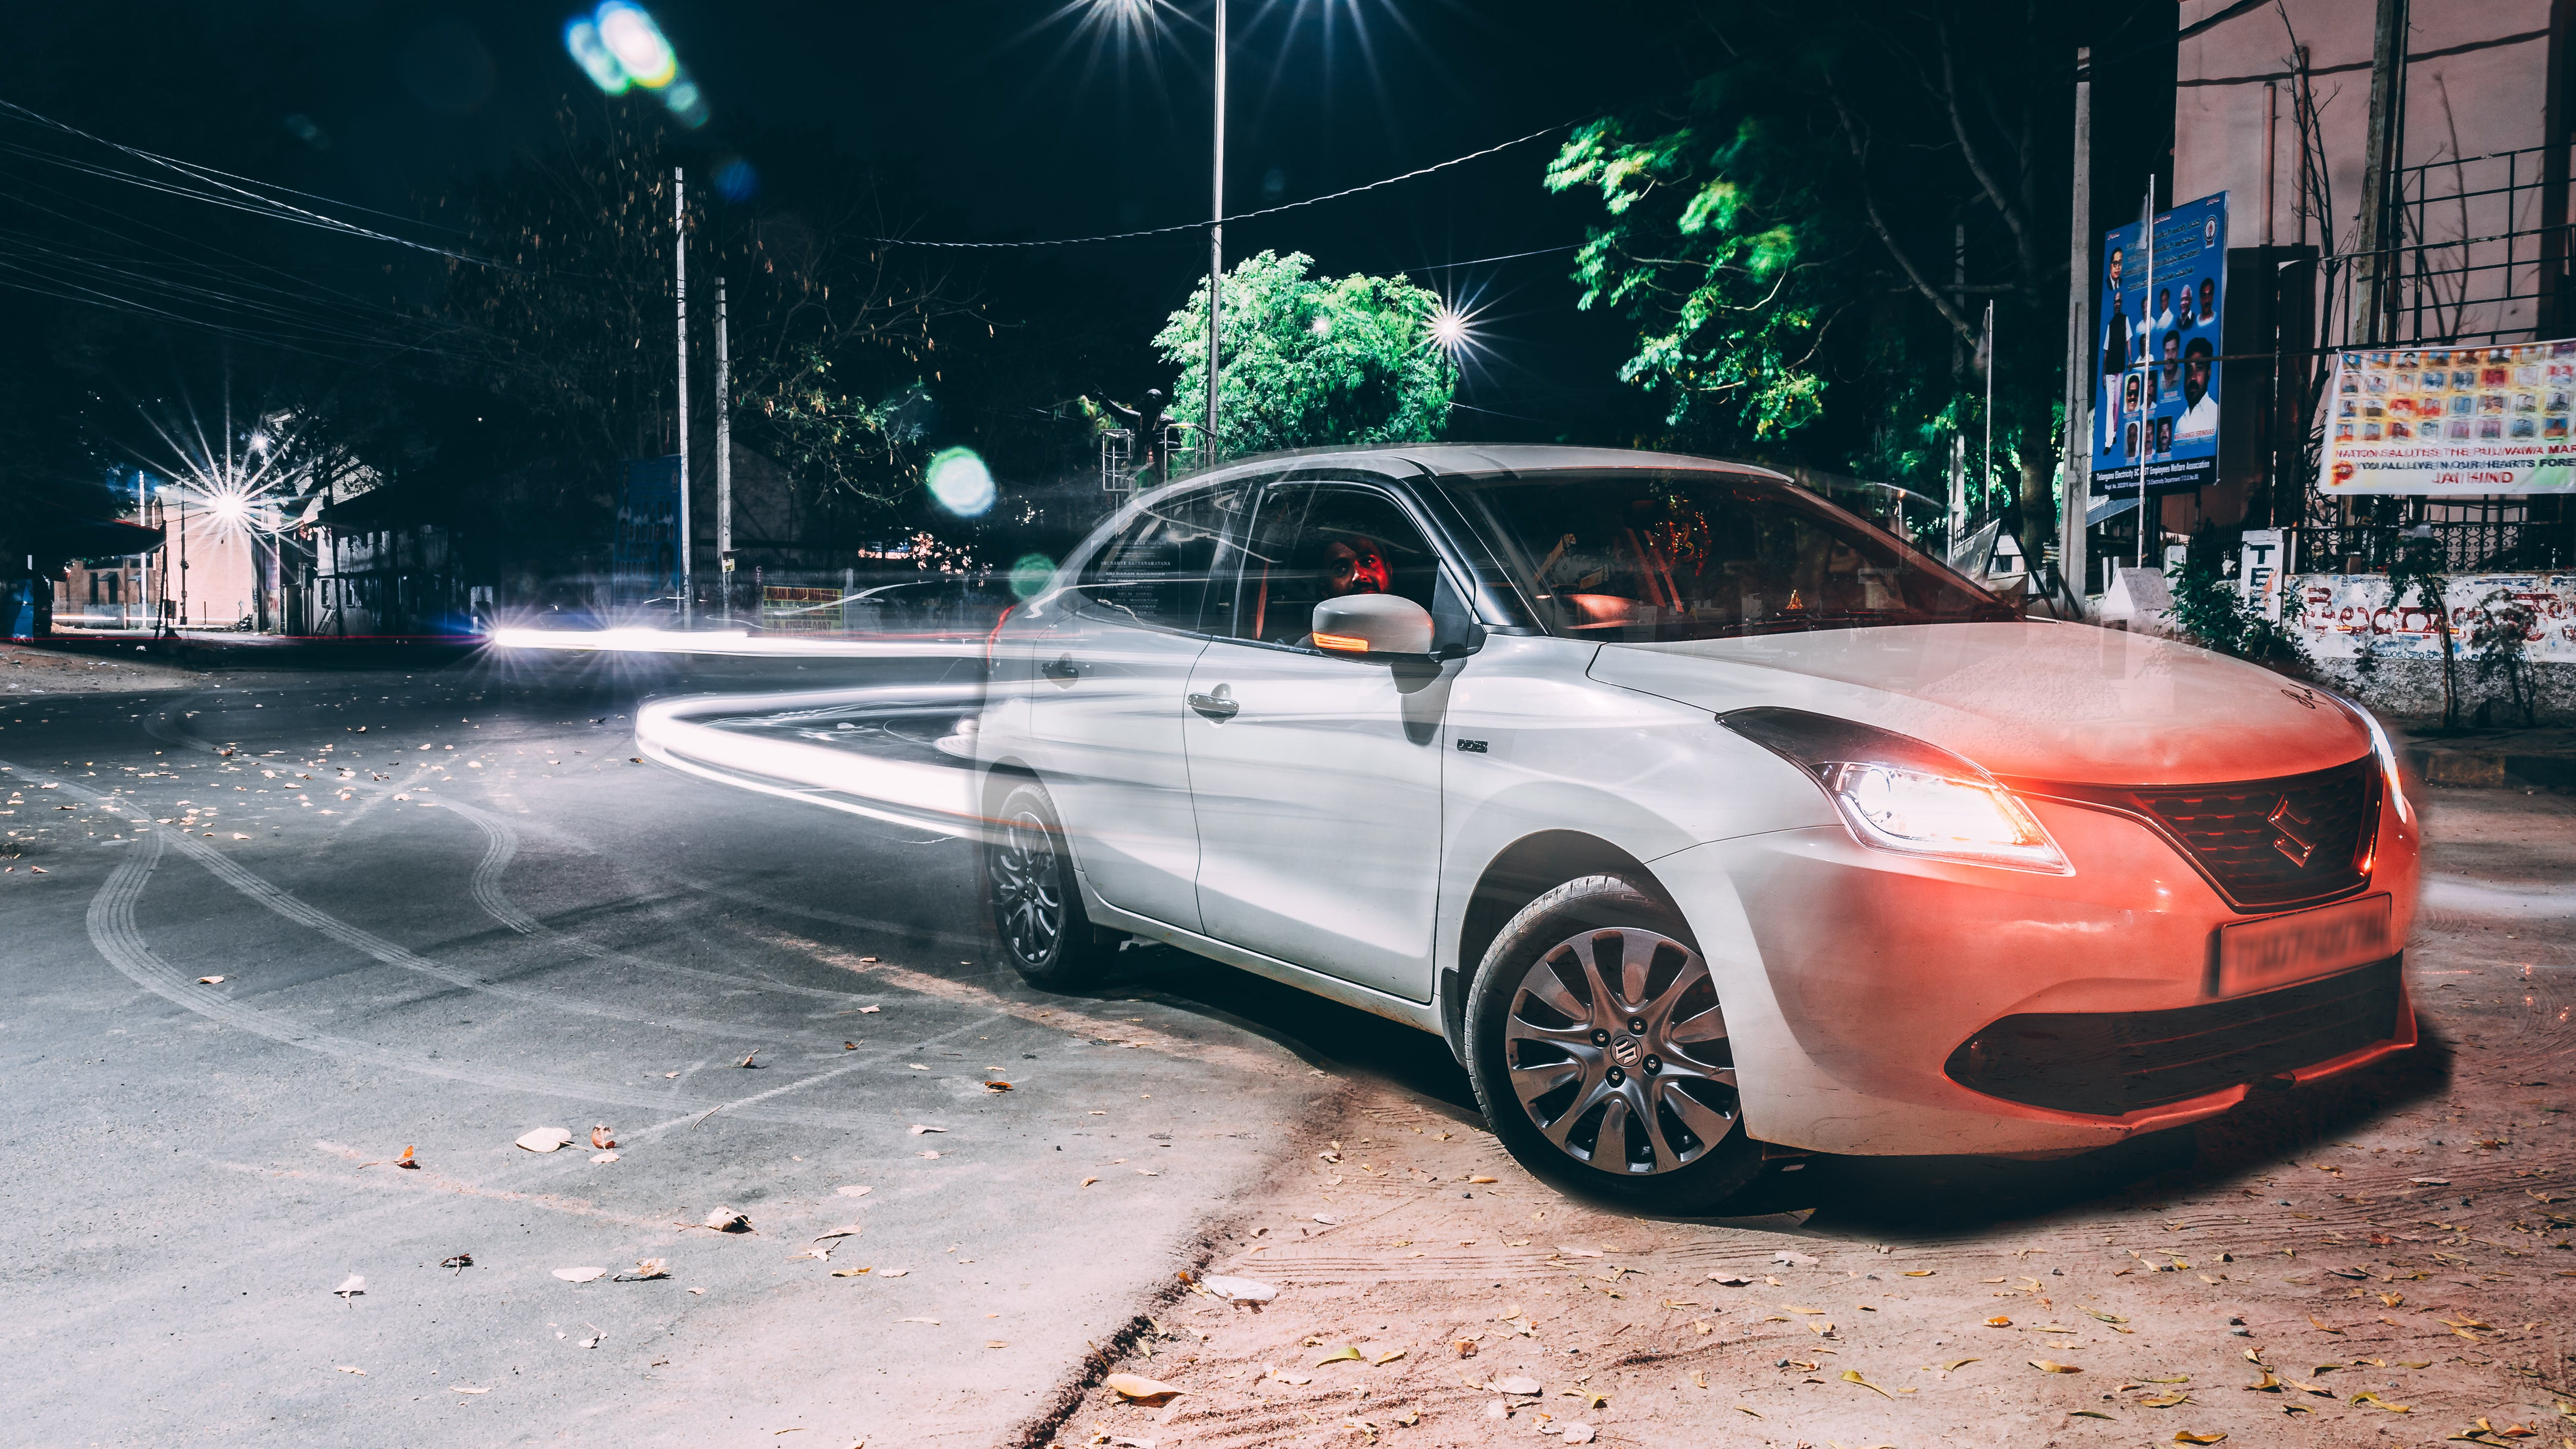 Long Exposure Photography of Silver Suzuki Dezire on Road